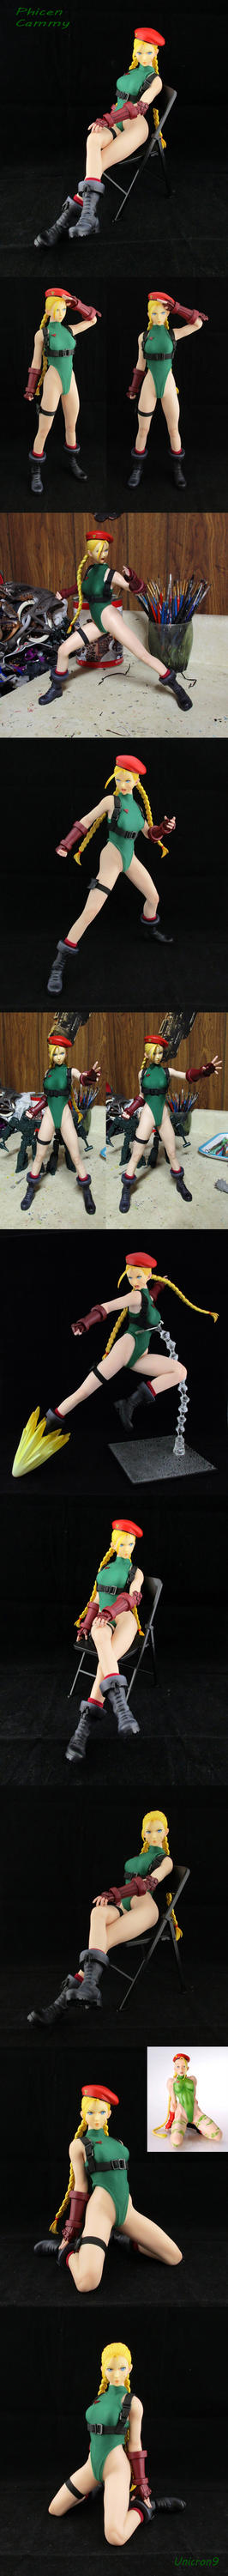 Phicen Cammy Improved by Unicron9